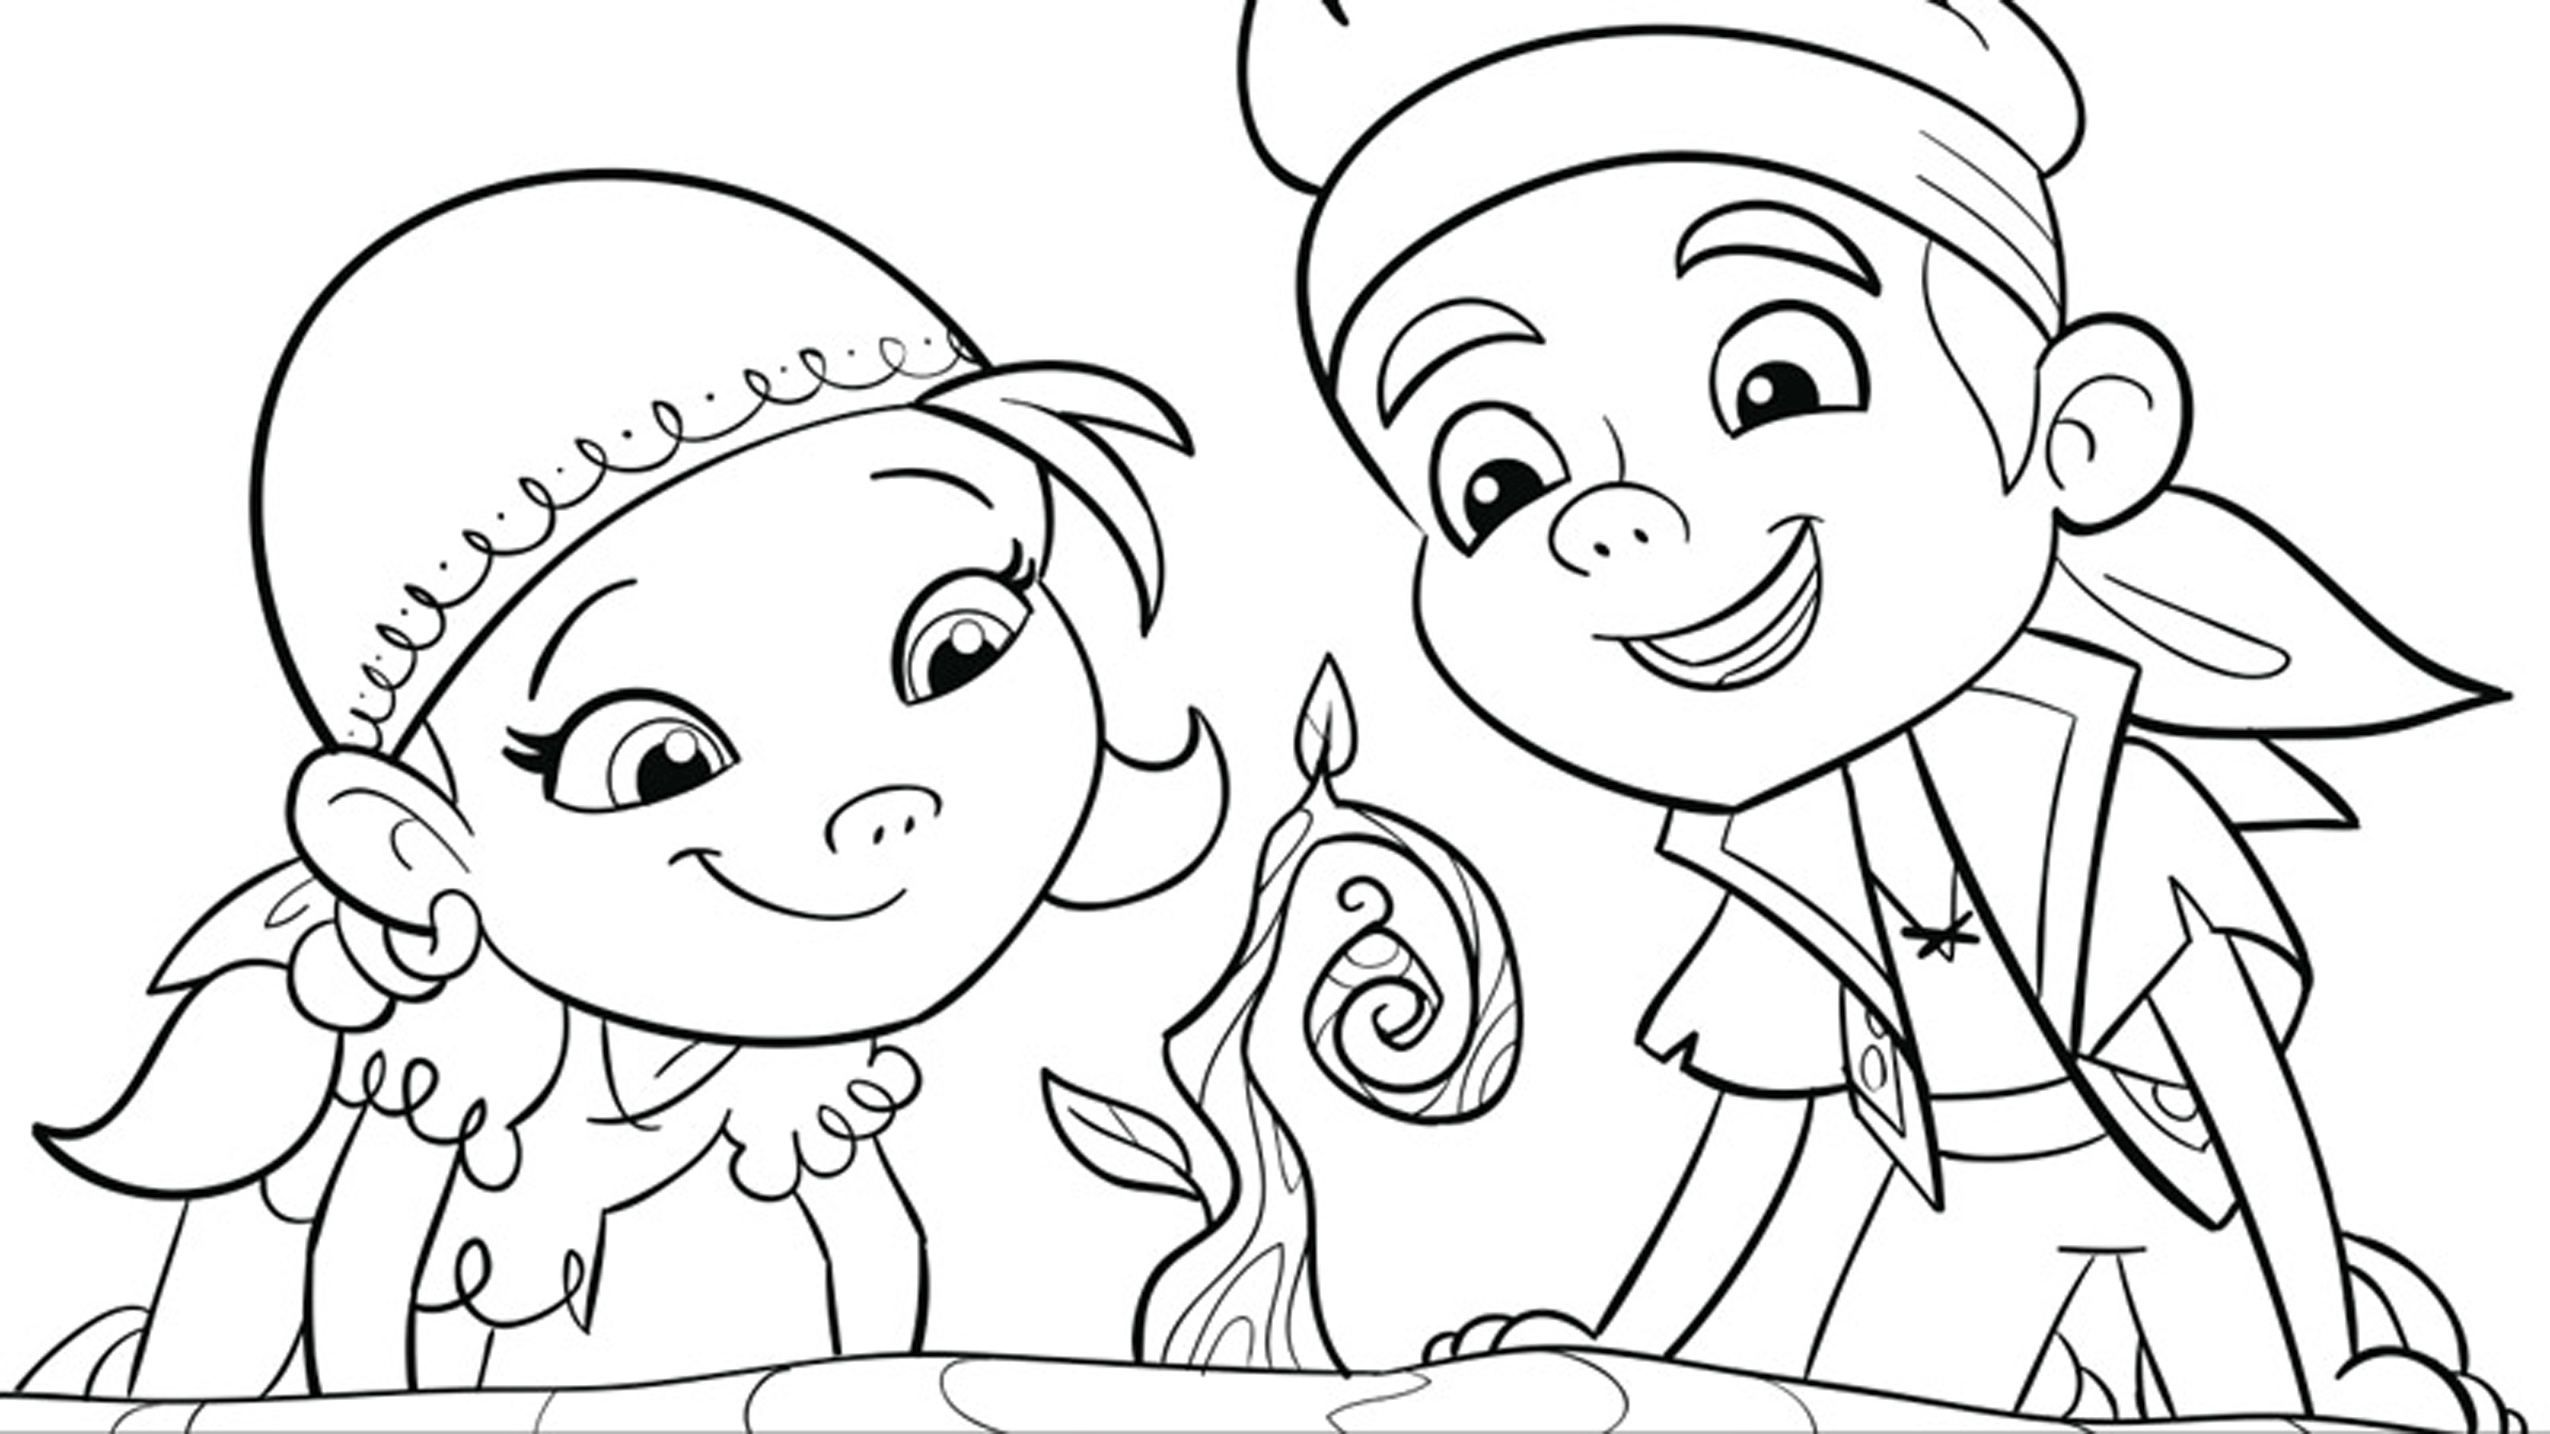 Playhouse Disney Coloring Pages Printable Kids Colouring Pages Coloring Home